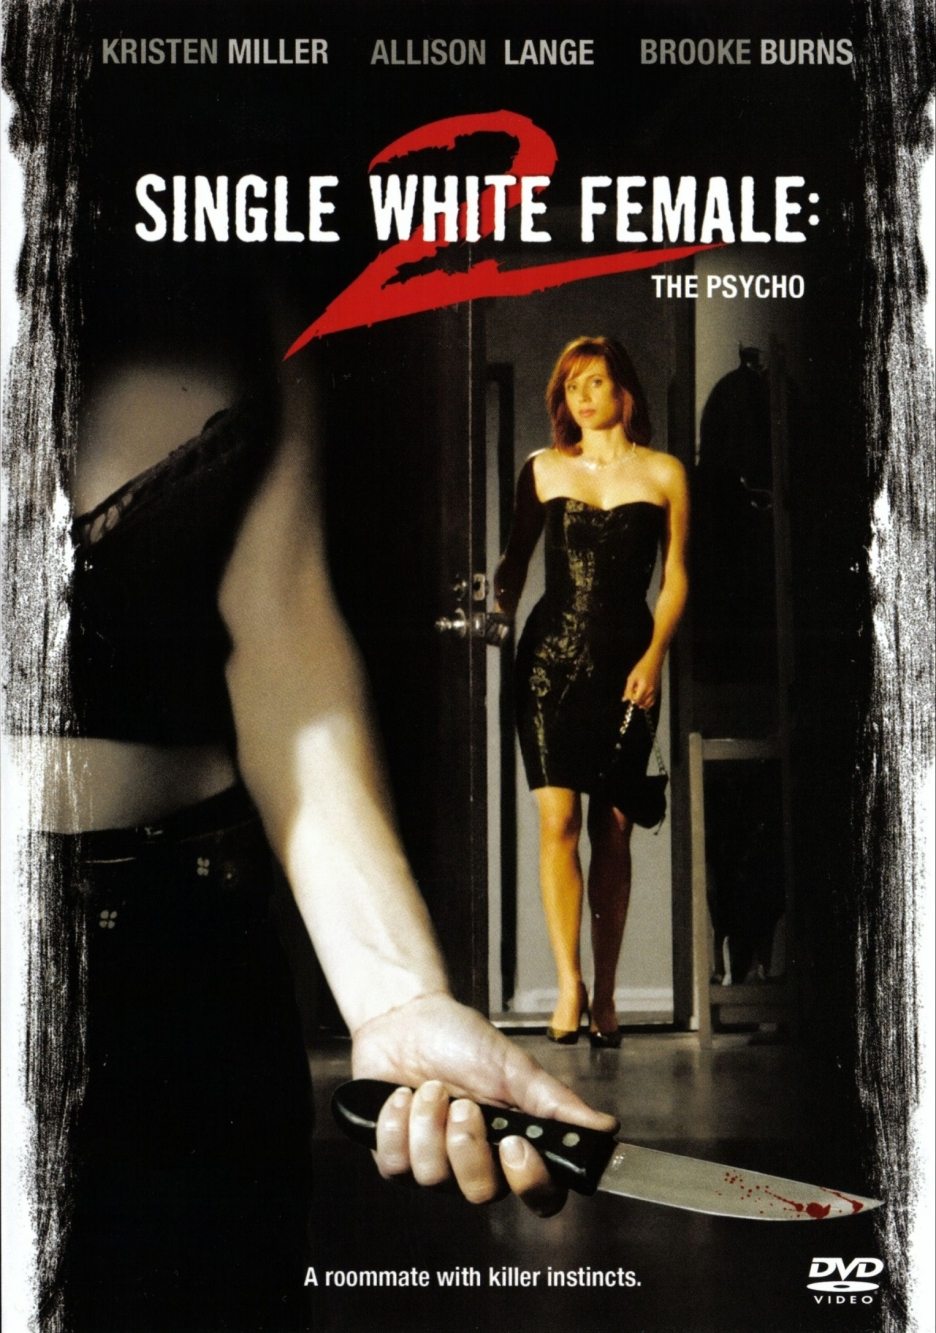 936full-single-white-female-2 -the-psycho-poster.jpg